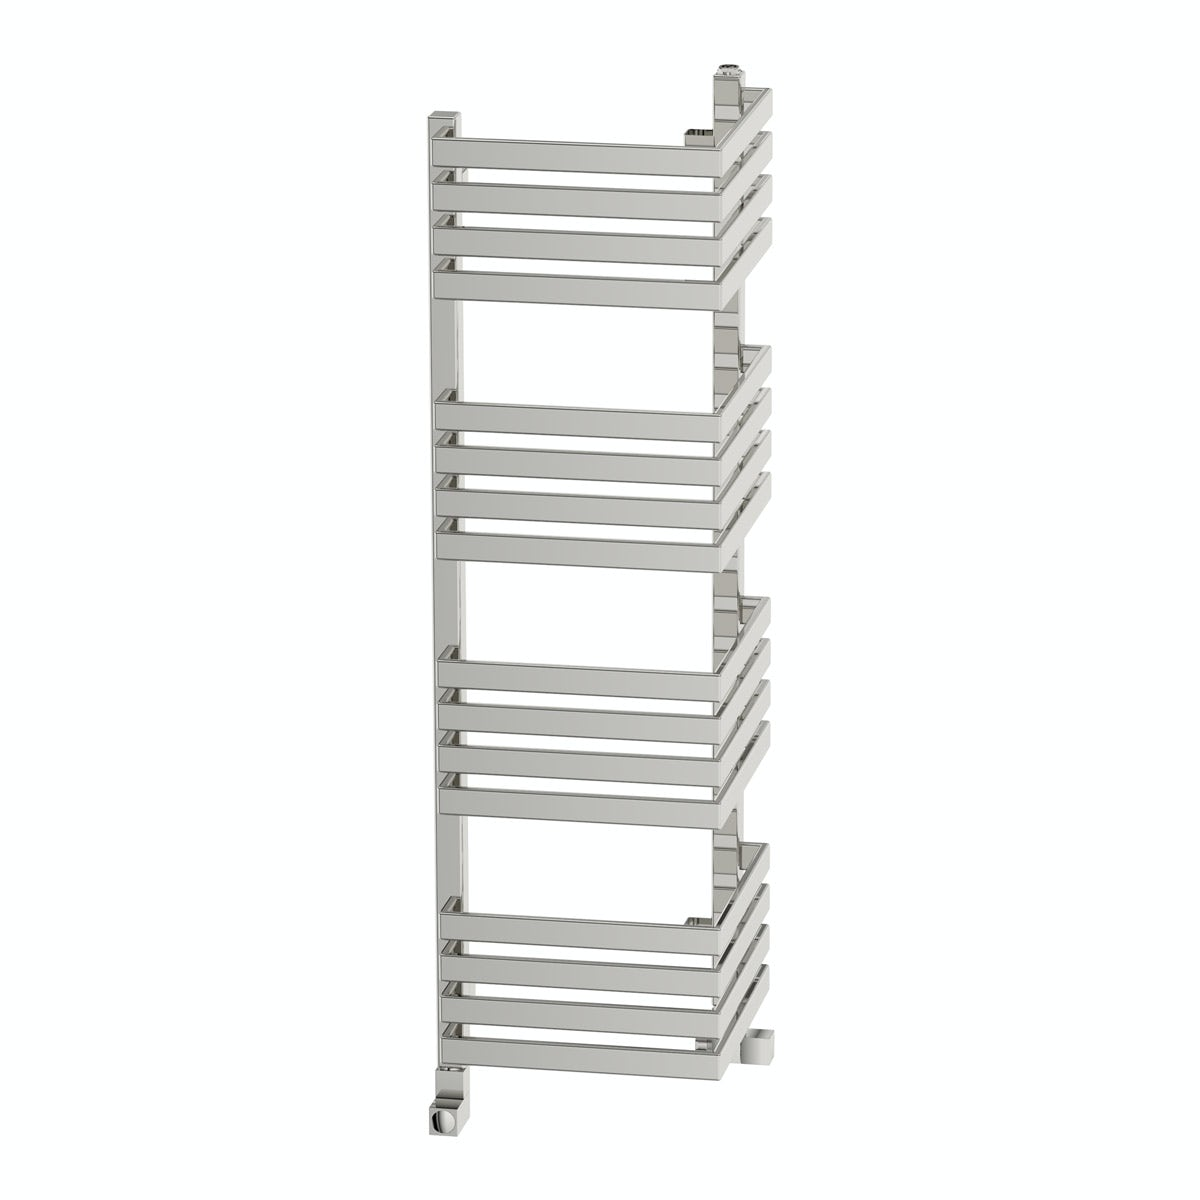 Terma Outcorner chrome effect heated towel rail 1005 x 300